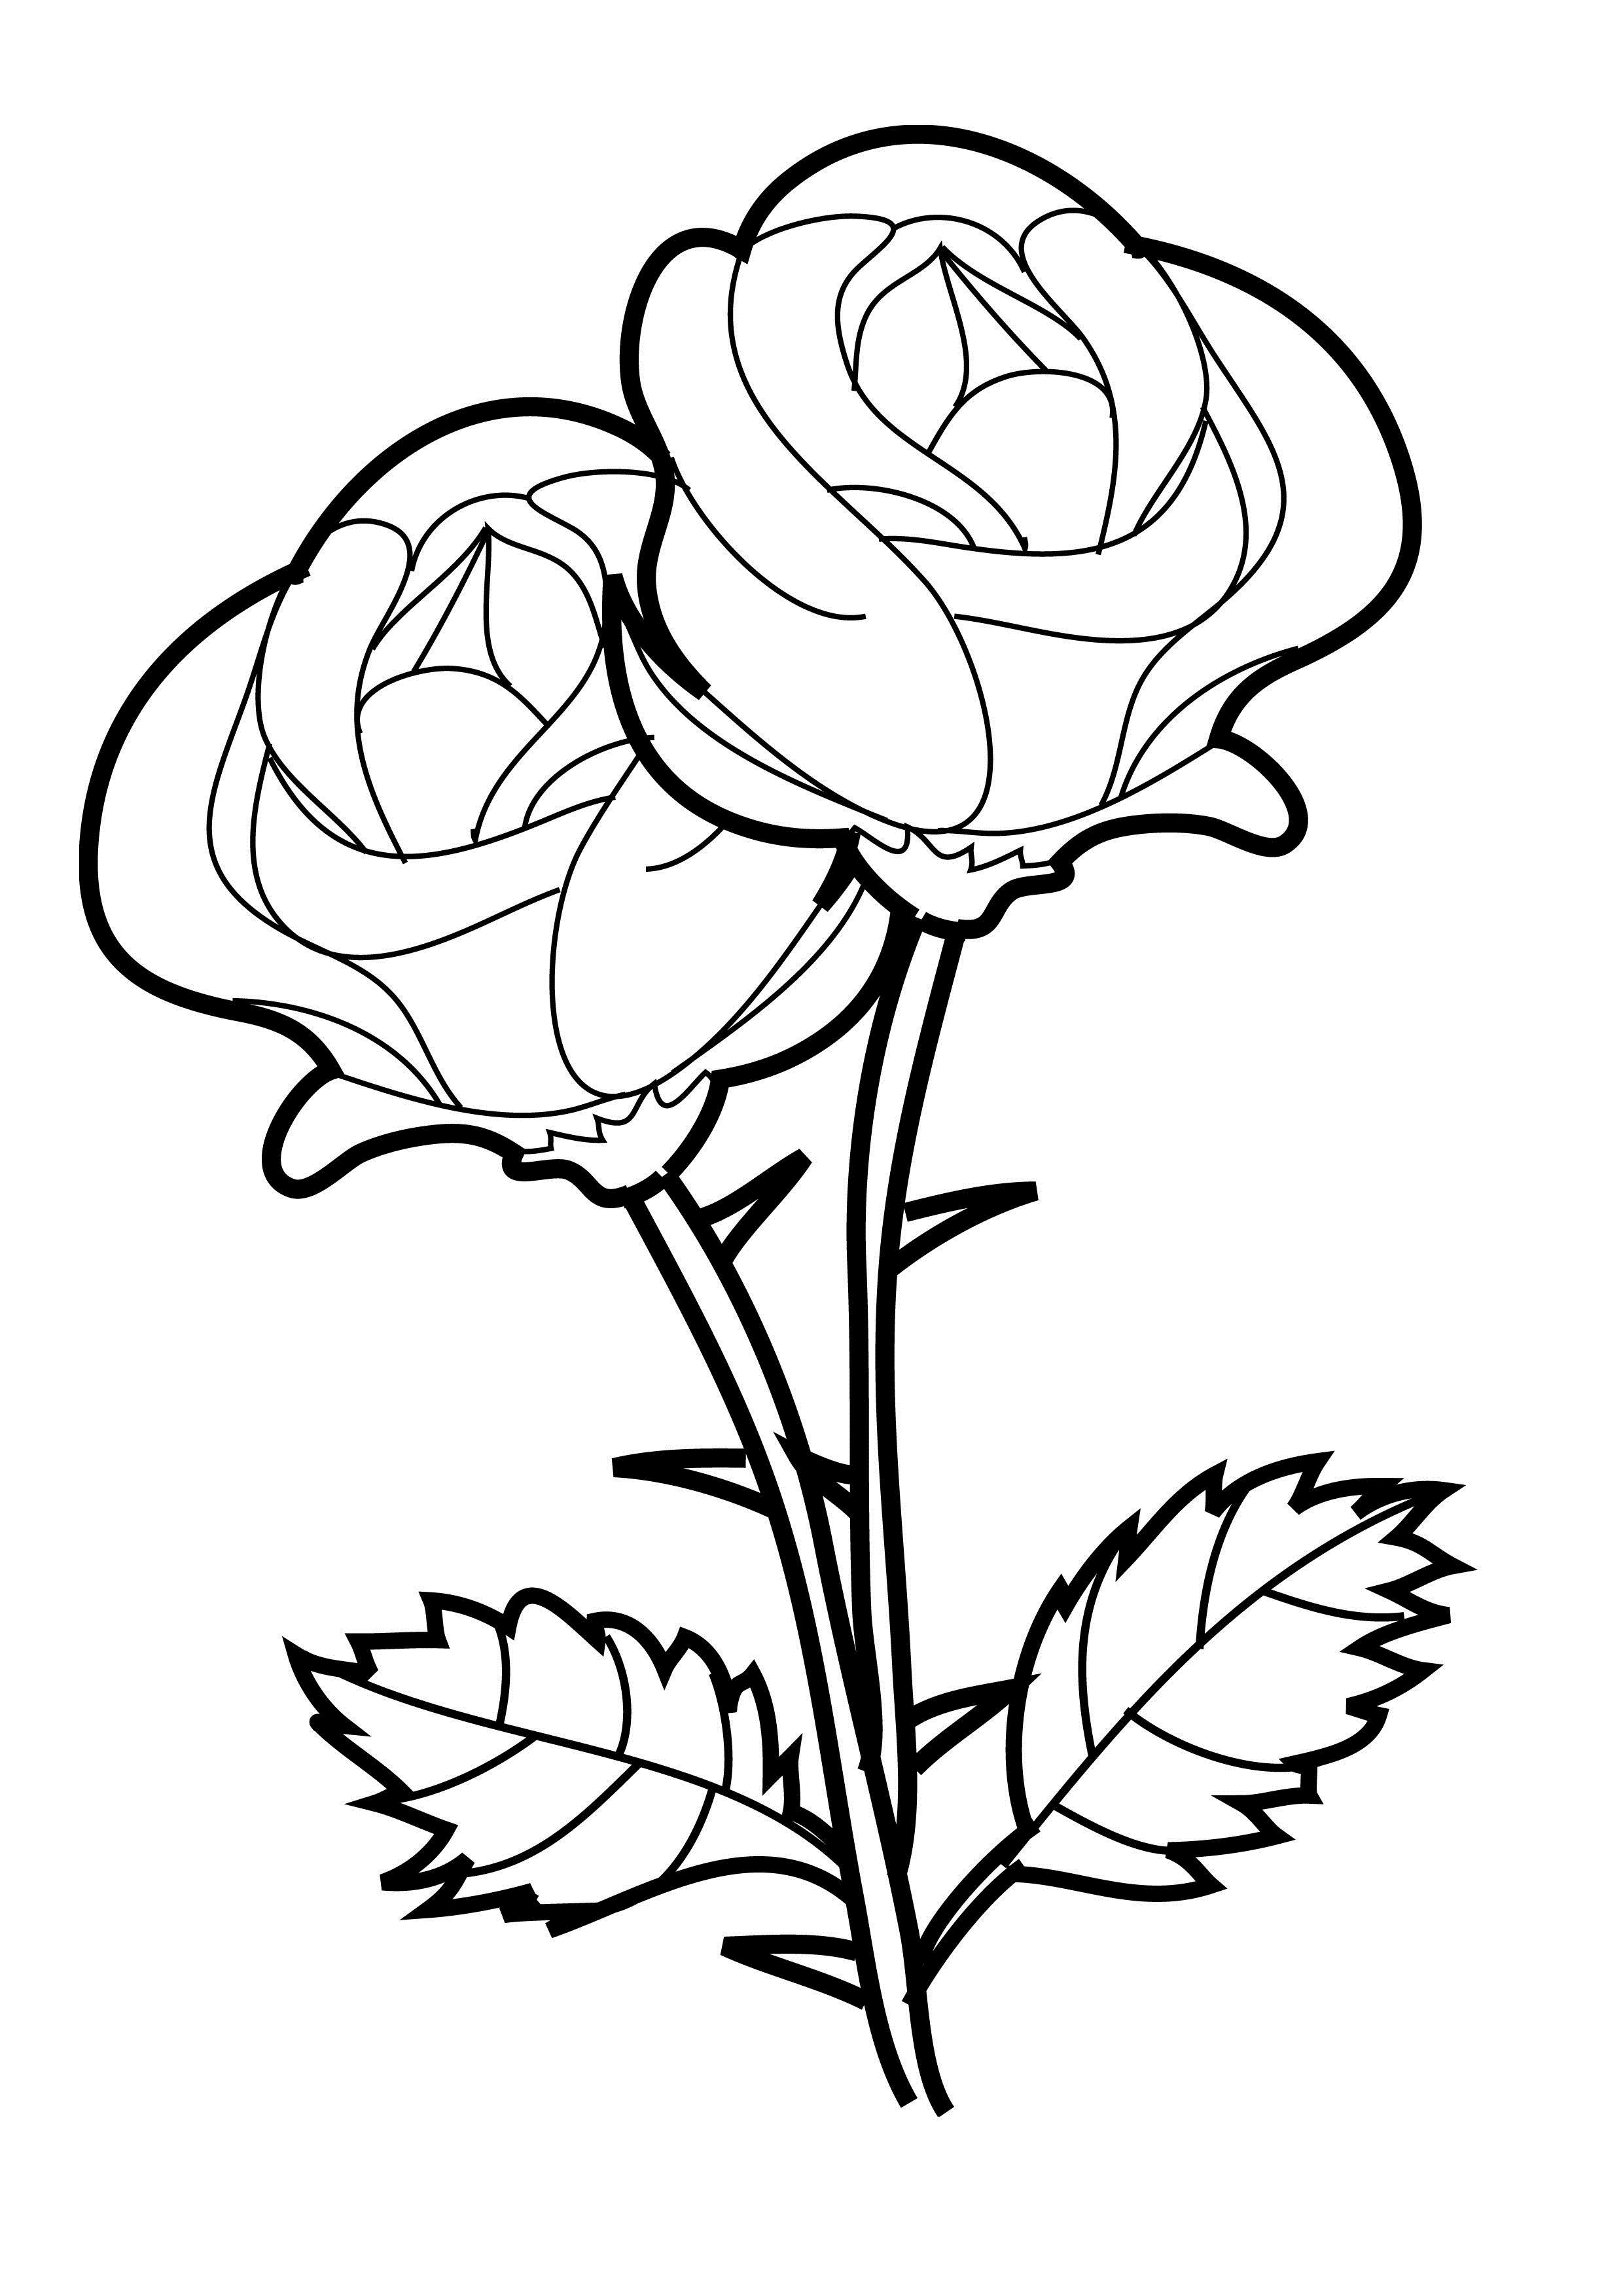 picture of flowers to colour free printable roses coloring pages for kids colour picture of flowers to